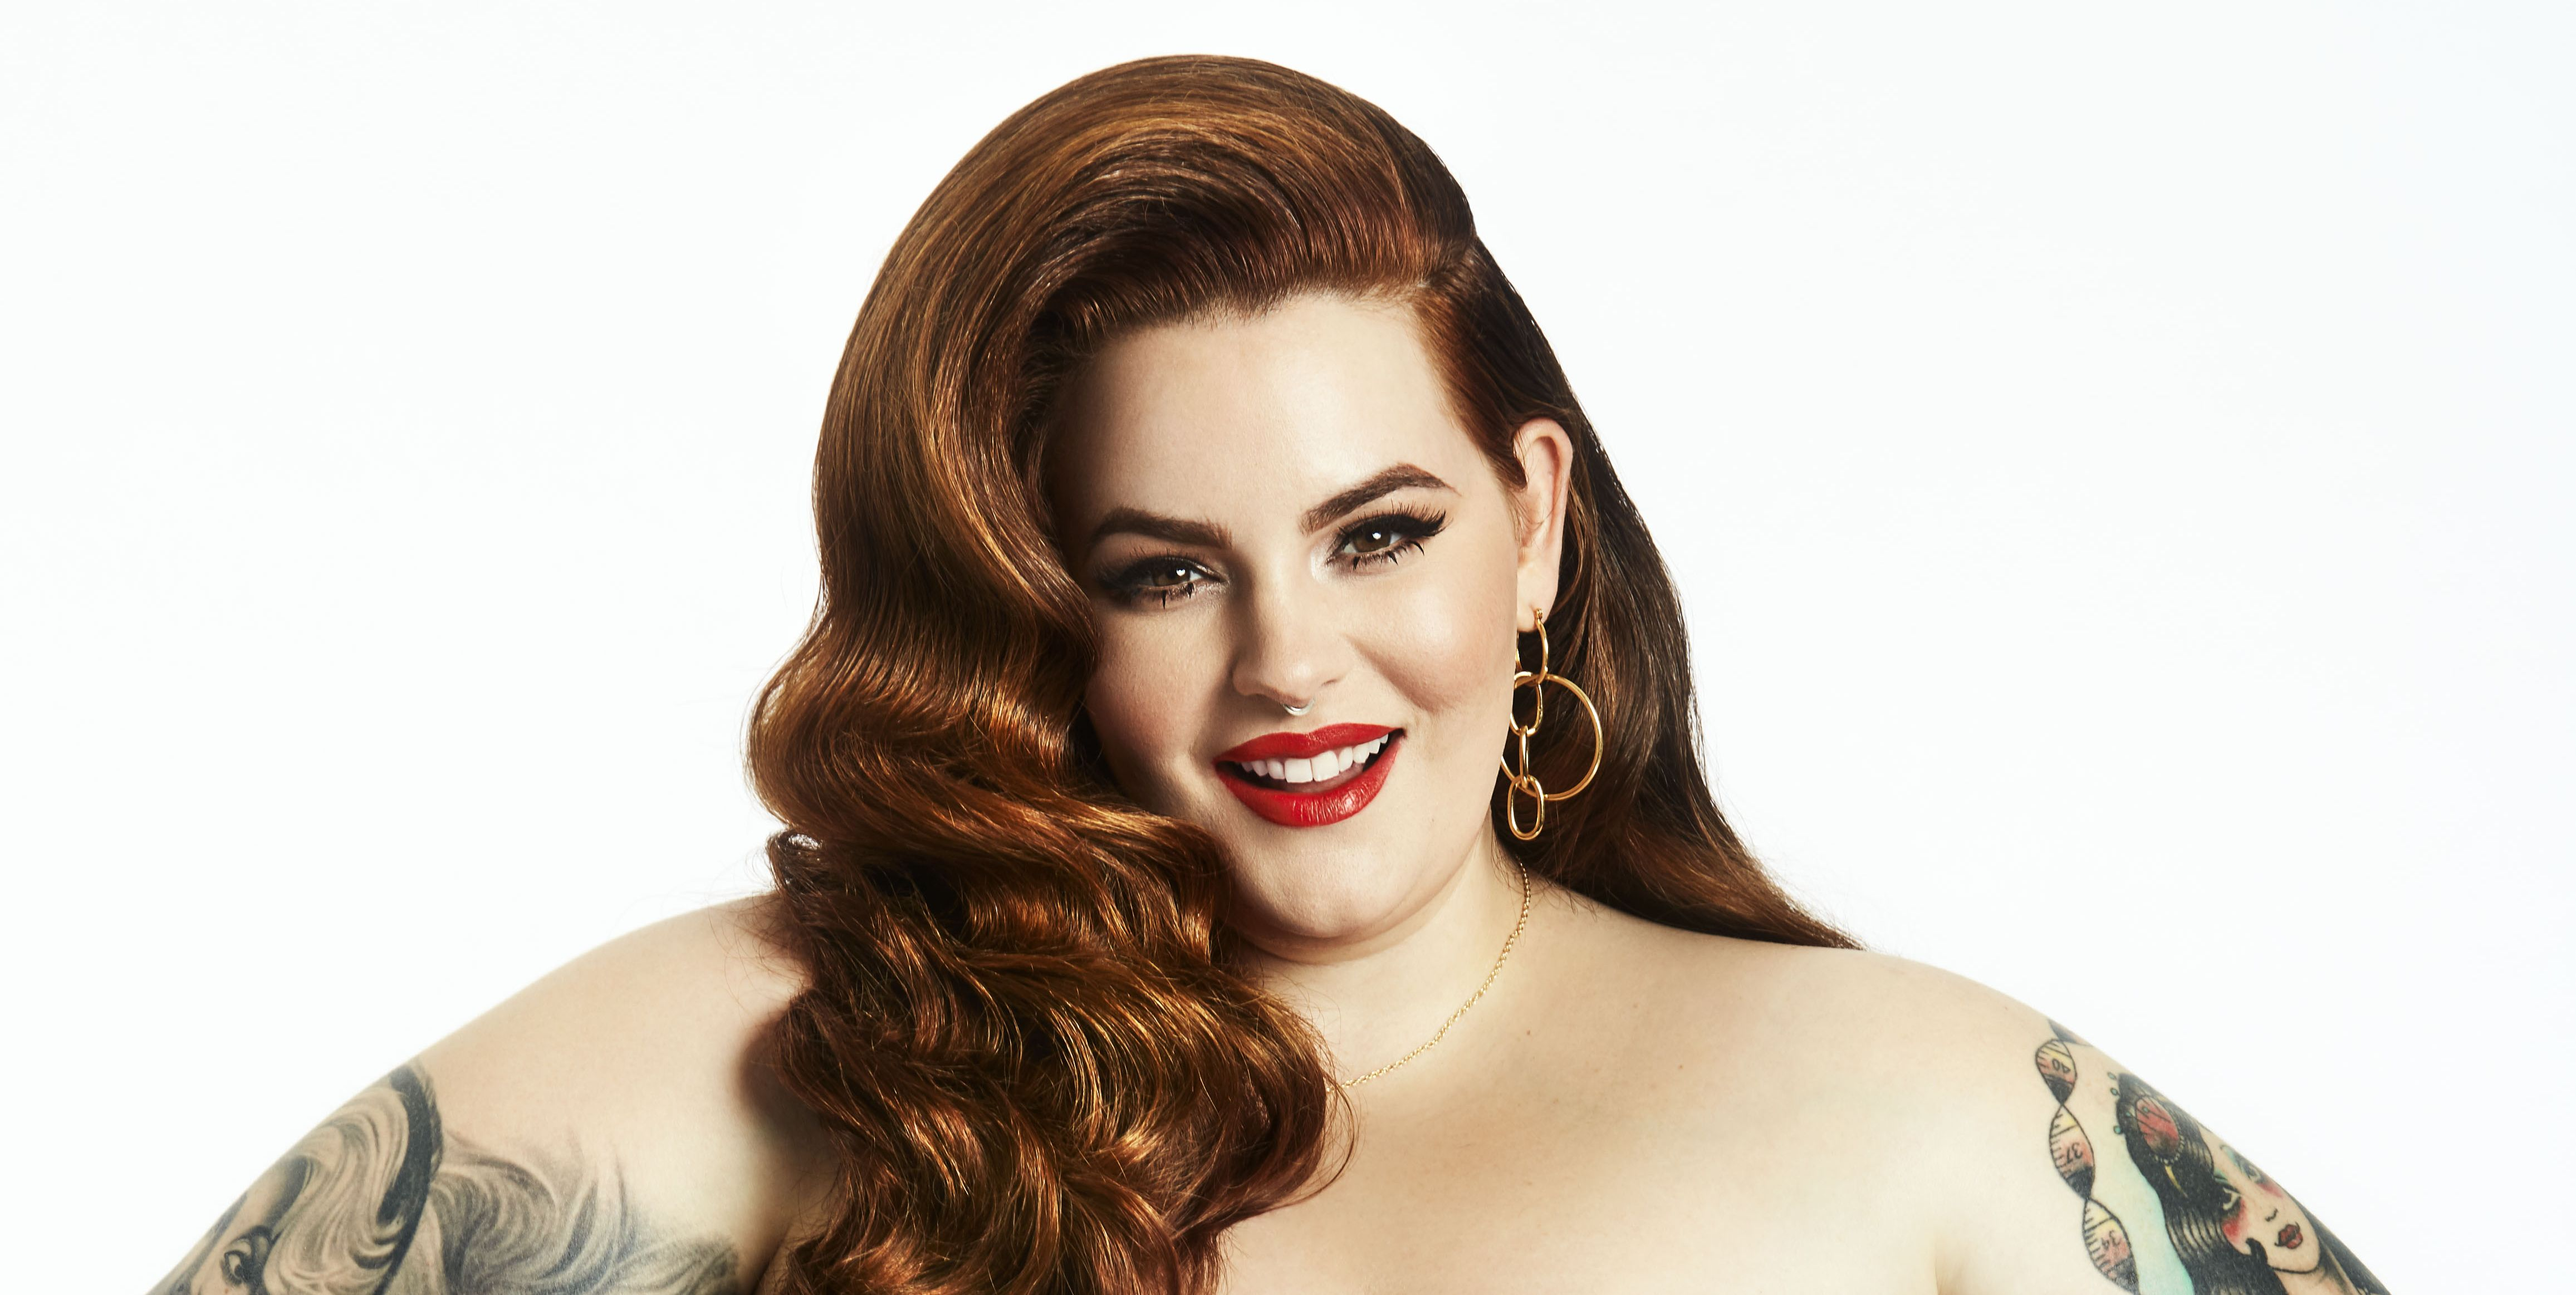 Tess Holliday plus size instagram model book